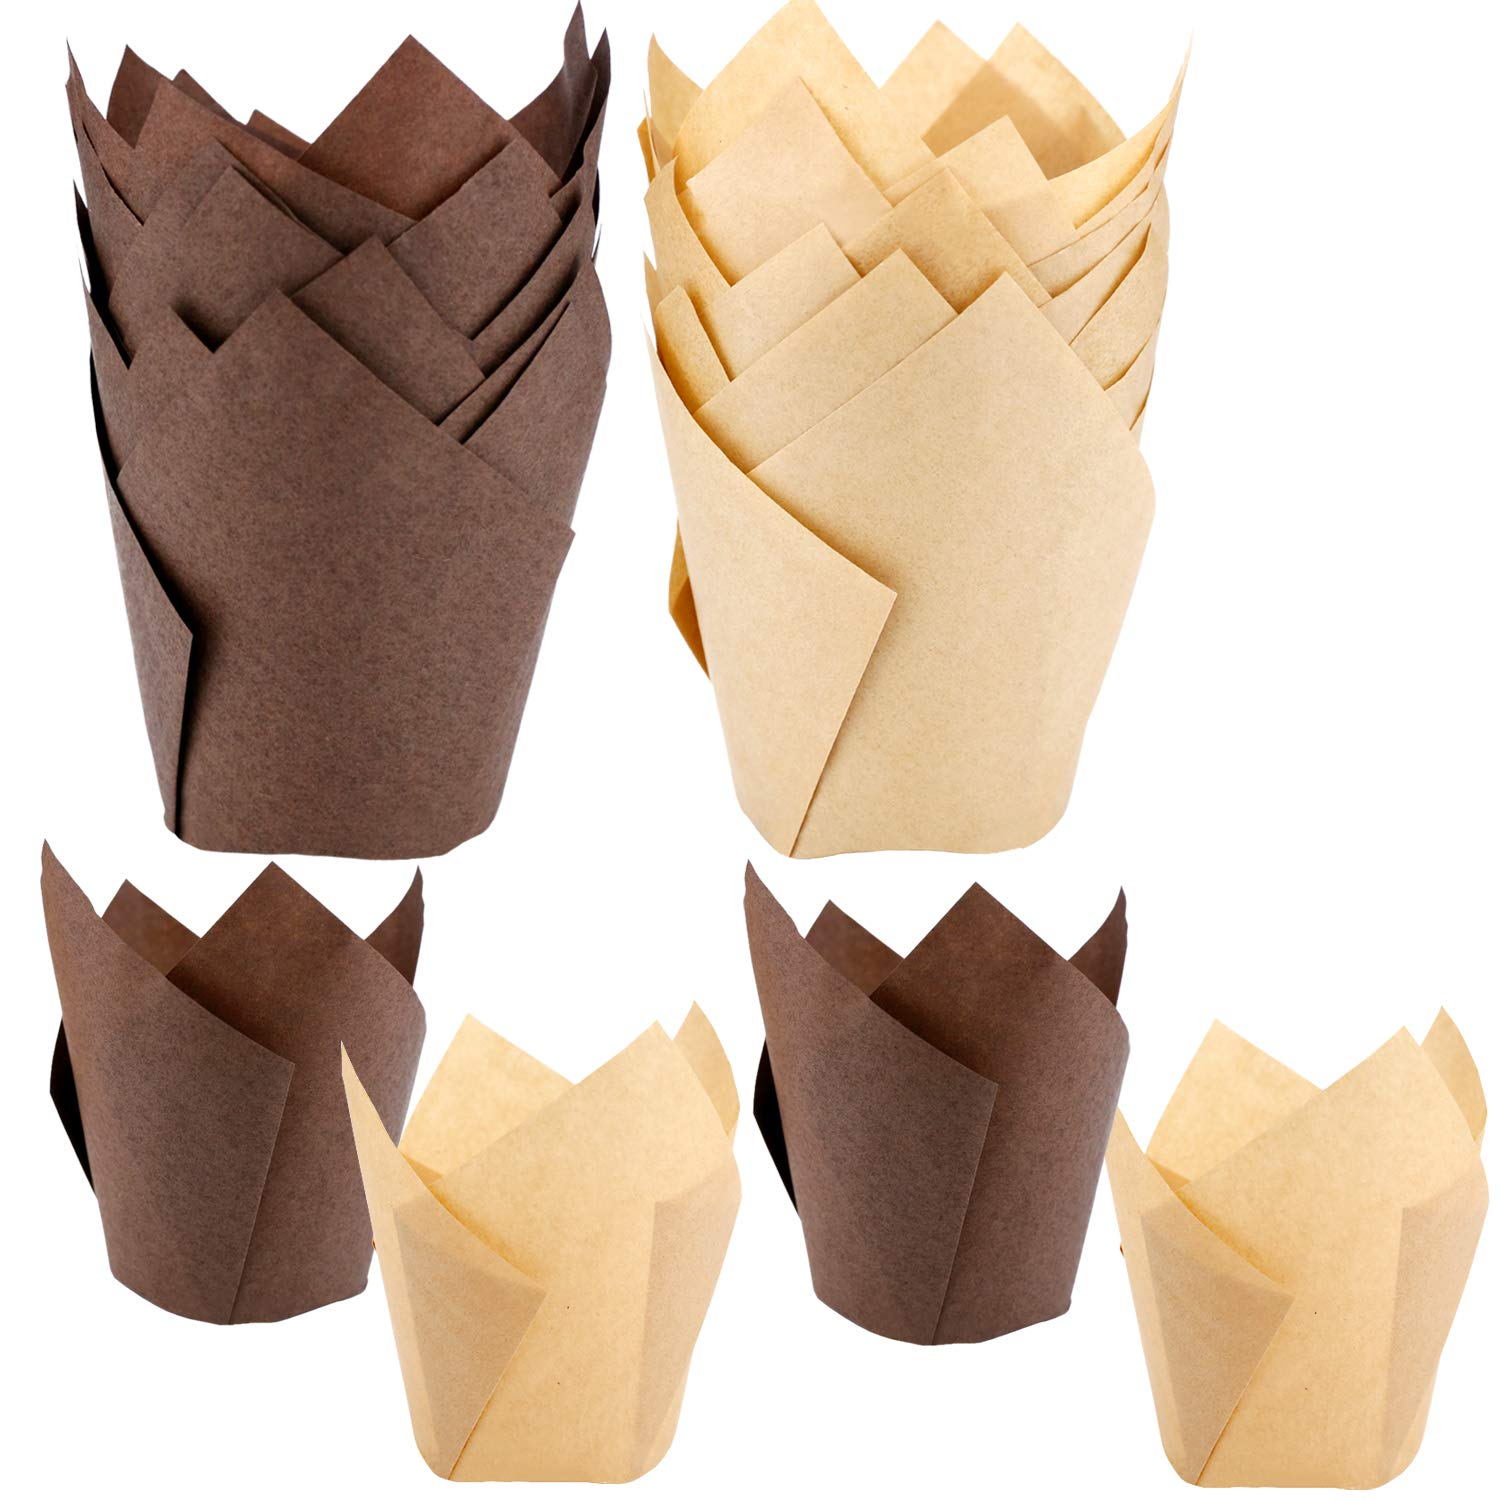 120 Pieces Tulip Cupcake Liner Baking Cups Muffin Tins Treat Cups for Weddings, Birthdays, Baby Showers,Brown and Natural